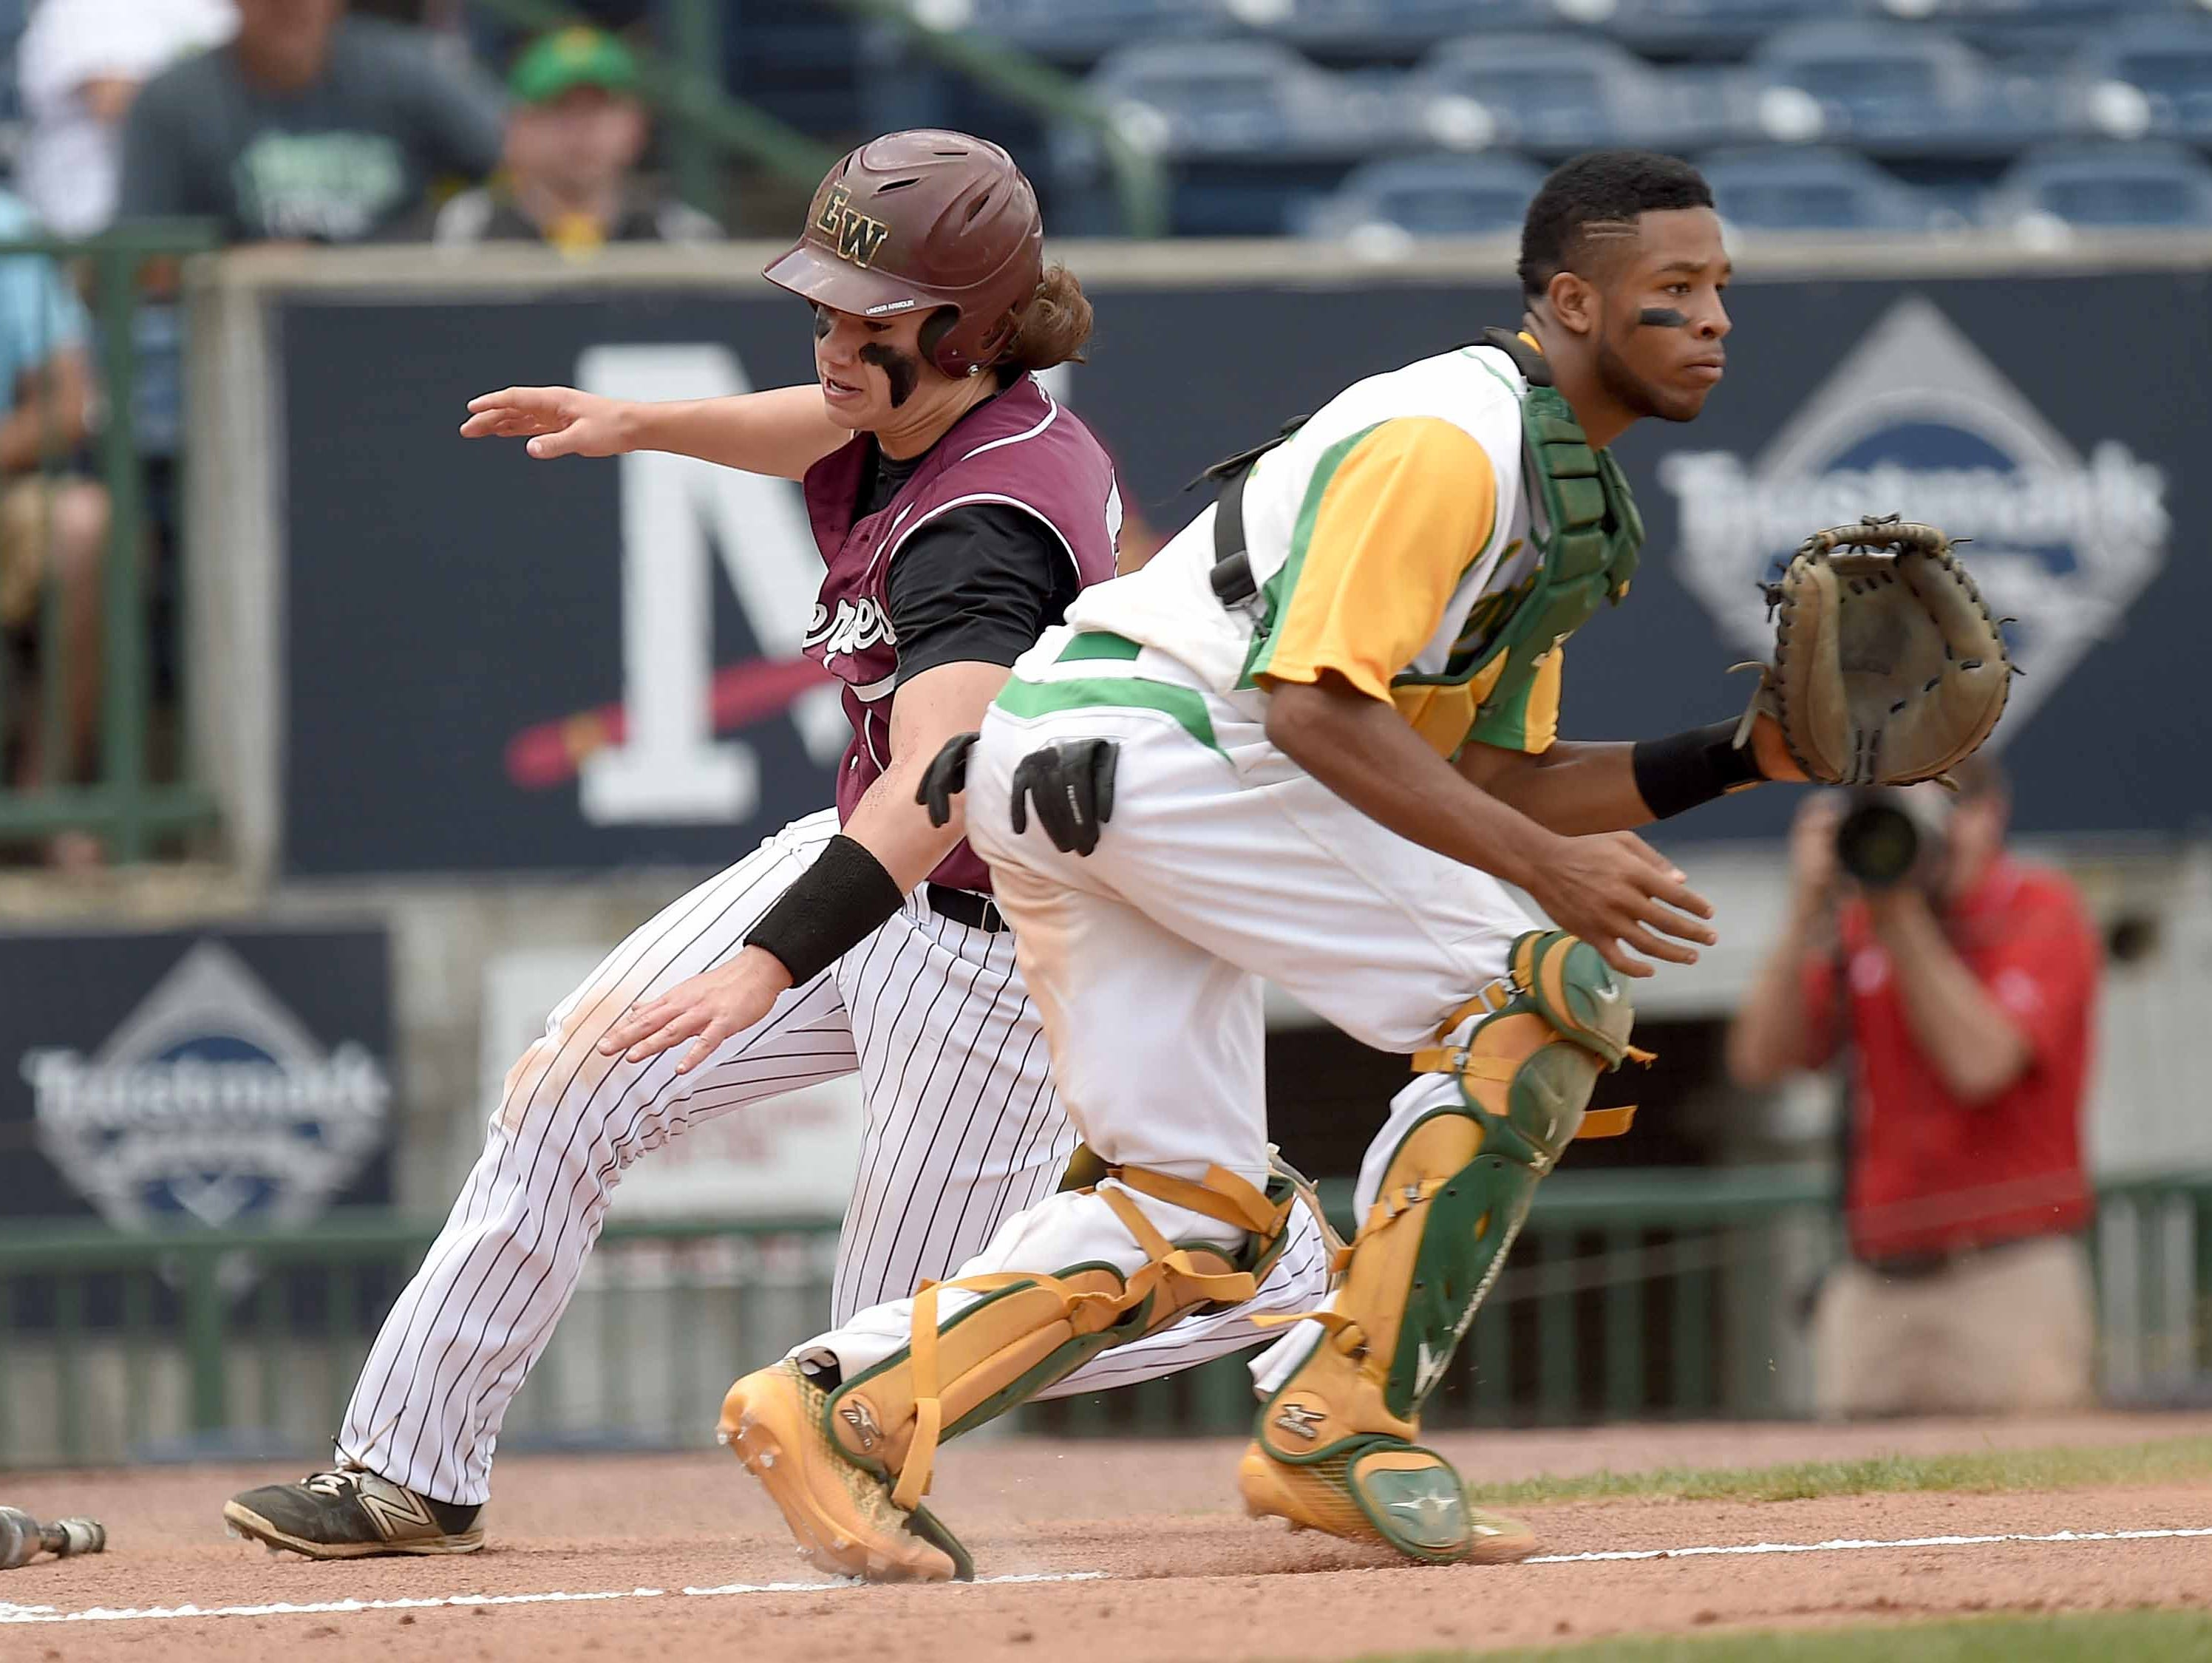 East Webster's Luke Wilson dashes home behind Taylorsville catcher Austin Moffett Saturday in game three of the Class 2A State Championship series at Trustmark Park in Pearl.